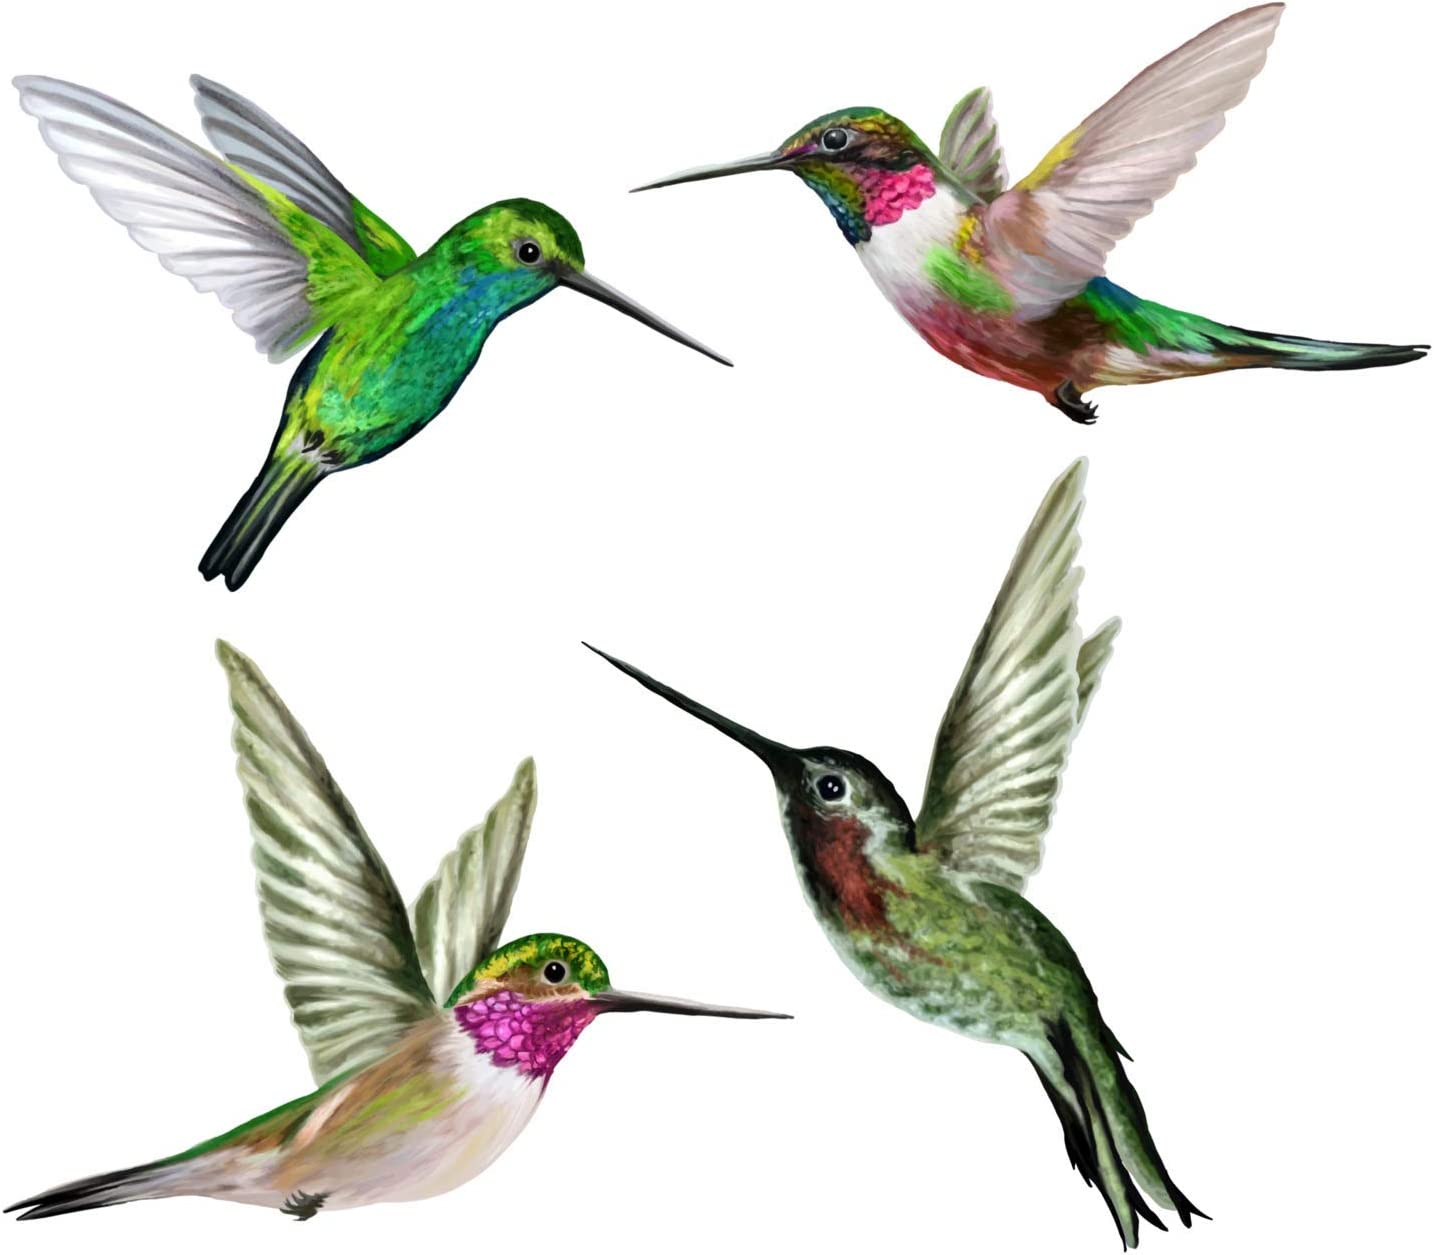 Anti-Collision Window Clings/Decals to Prevent Bird Strikes on Window Glass - Set of 4 Hummingbird Window Clings